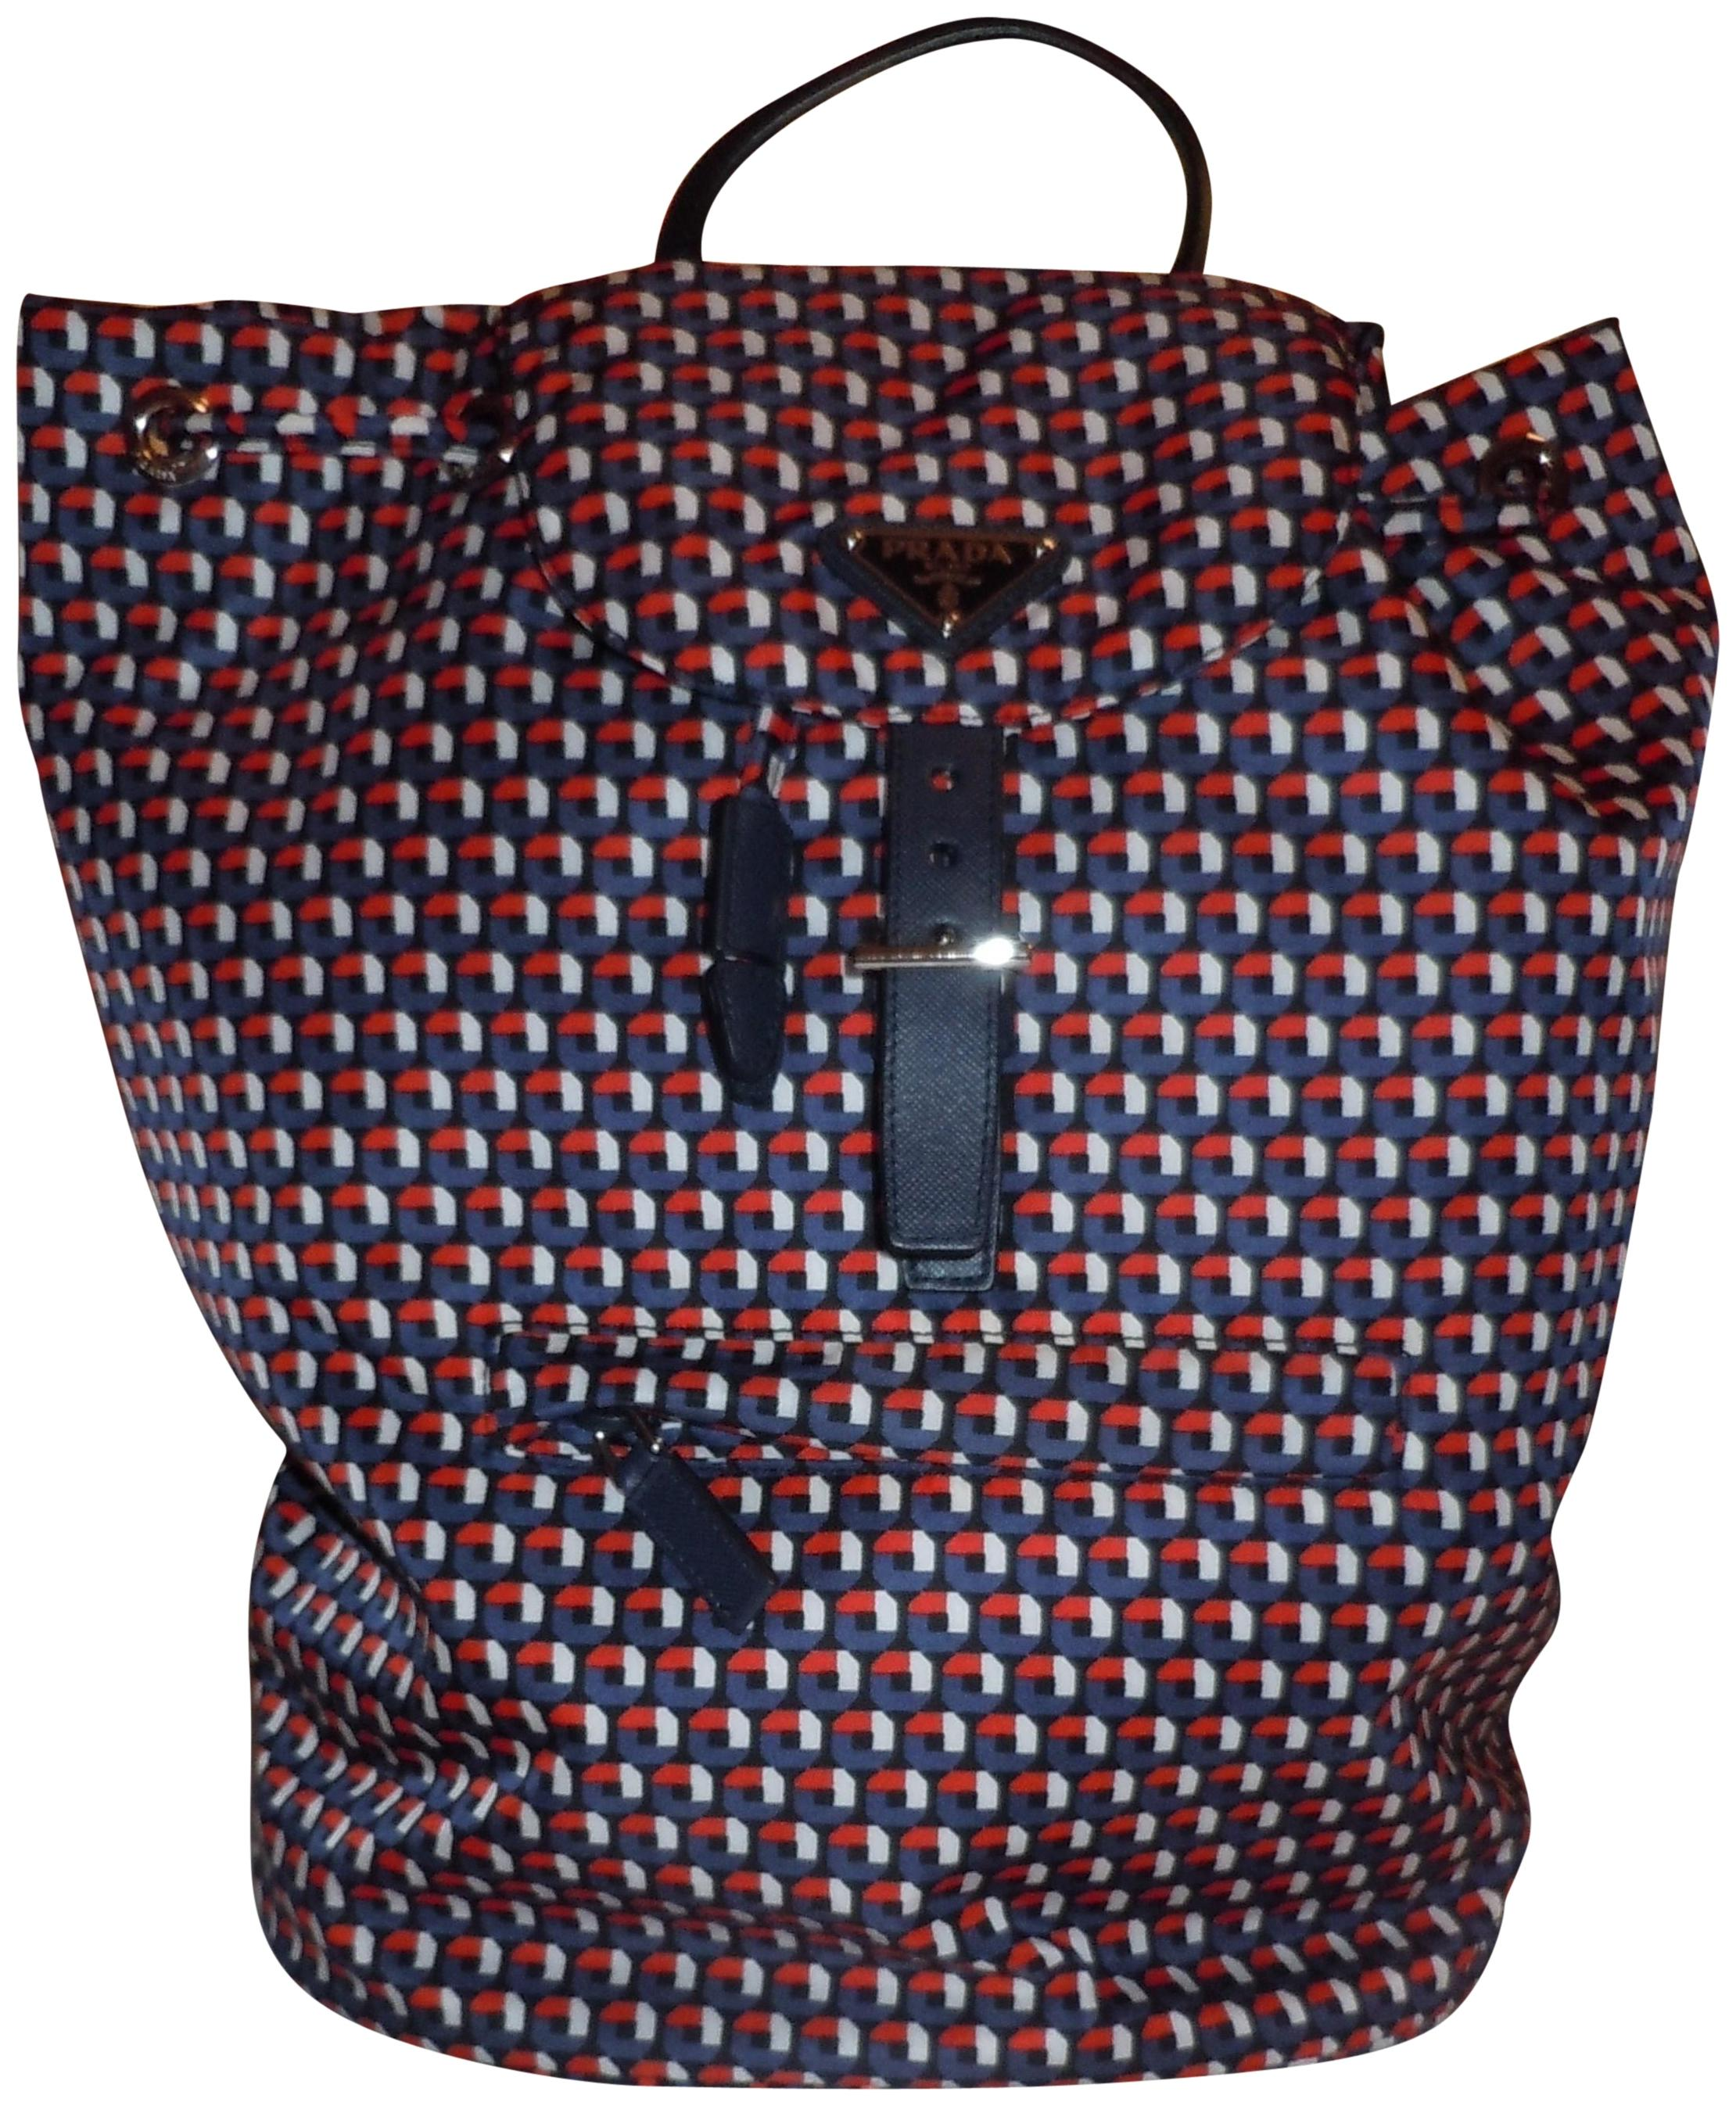 311a6c6382 ... cheap prada backpacks on sale up to 70 off at tradesy 03a06 4d372